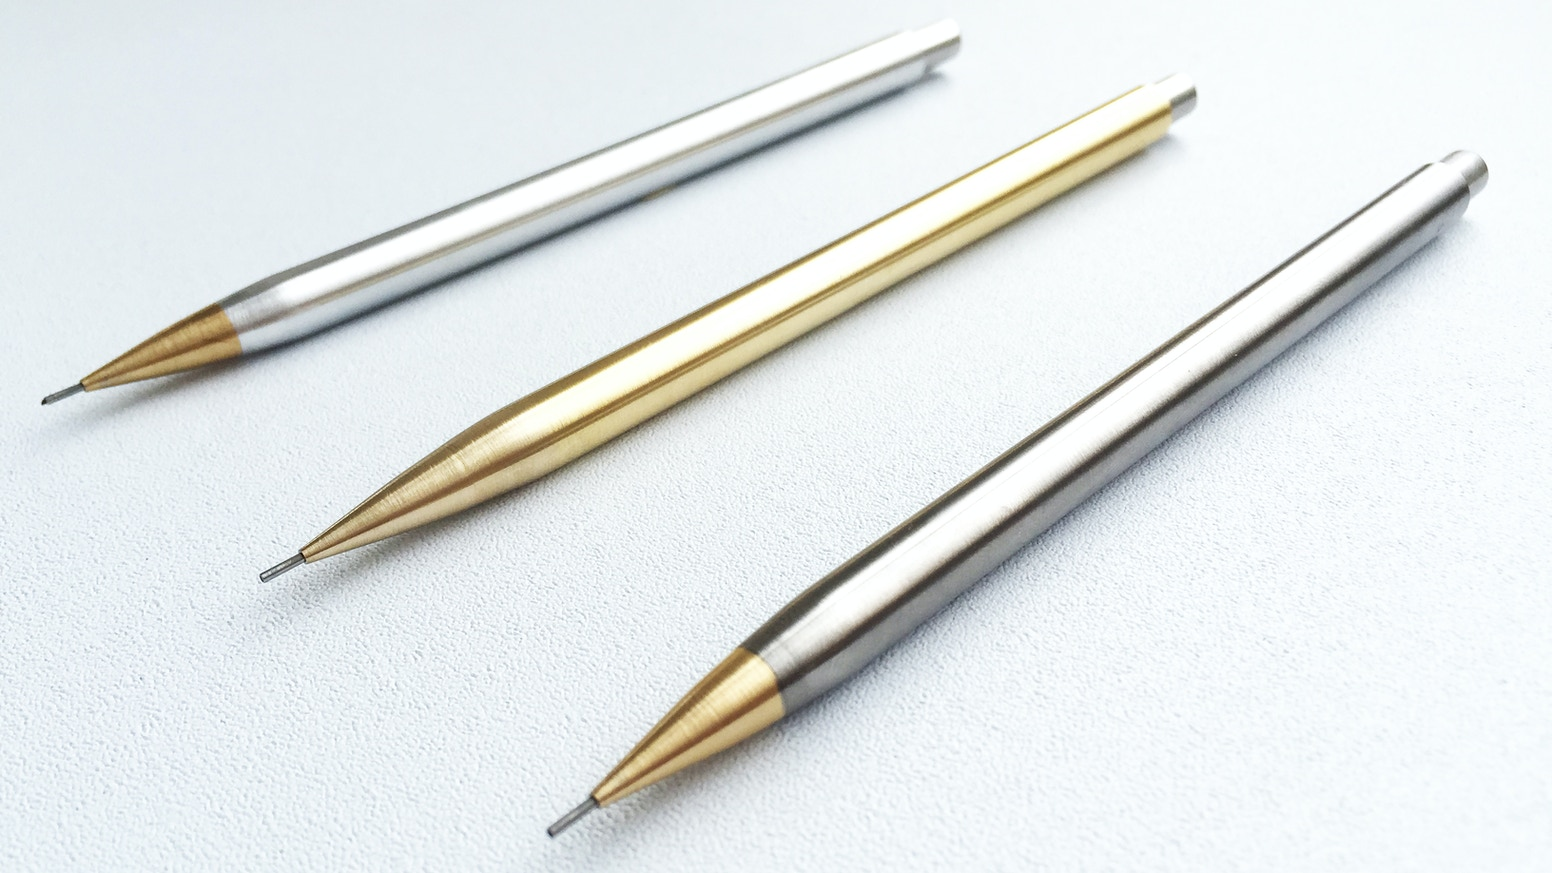 A true drawing tool, handmade for life. A beautifully stylish writing and drawing instrument designed and built by Nicholas Hemingway. Available at www.nicholashemingway.com